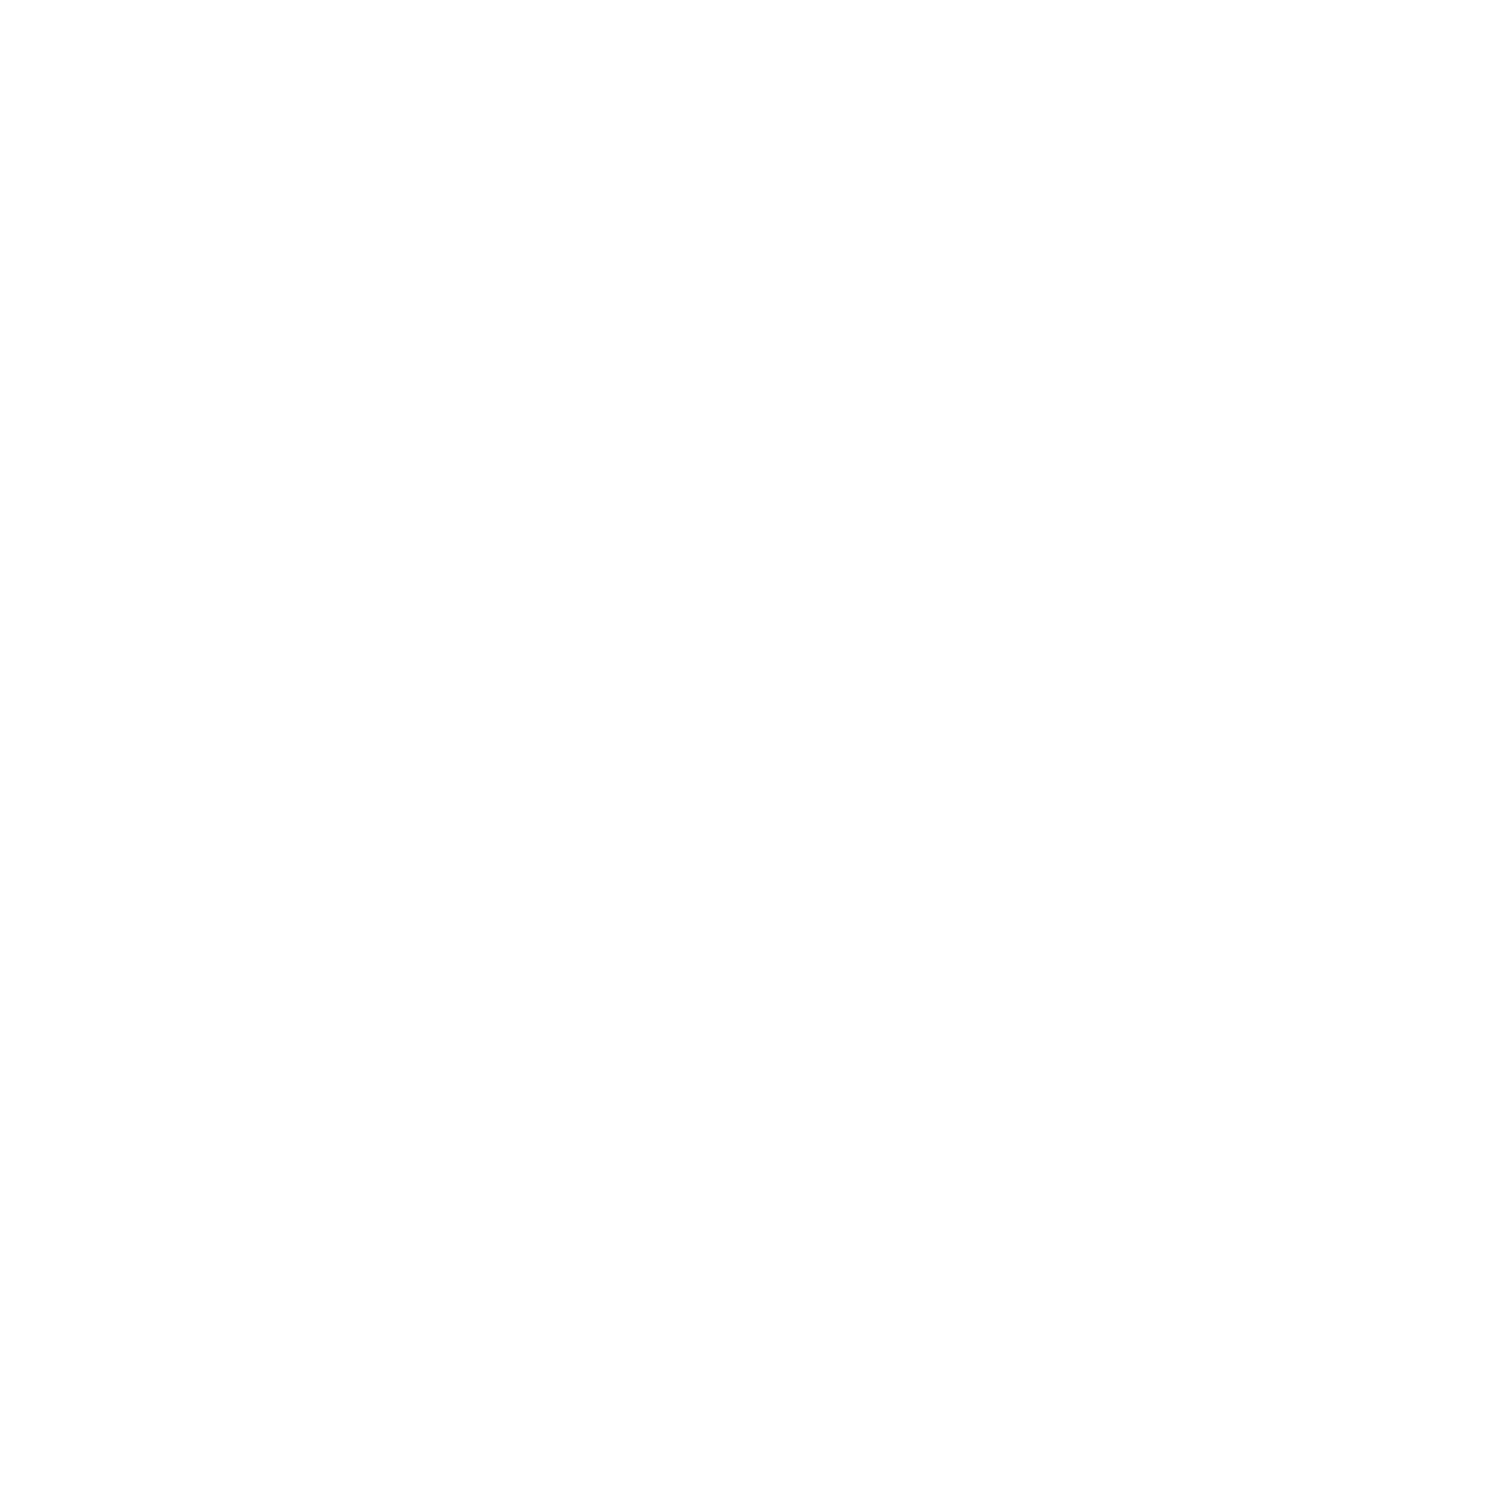 New Life Churches